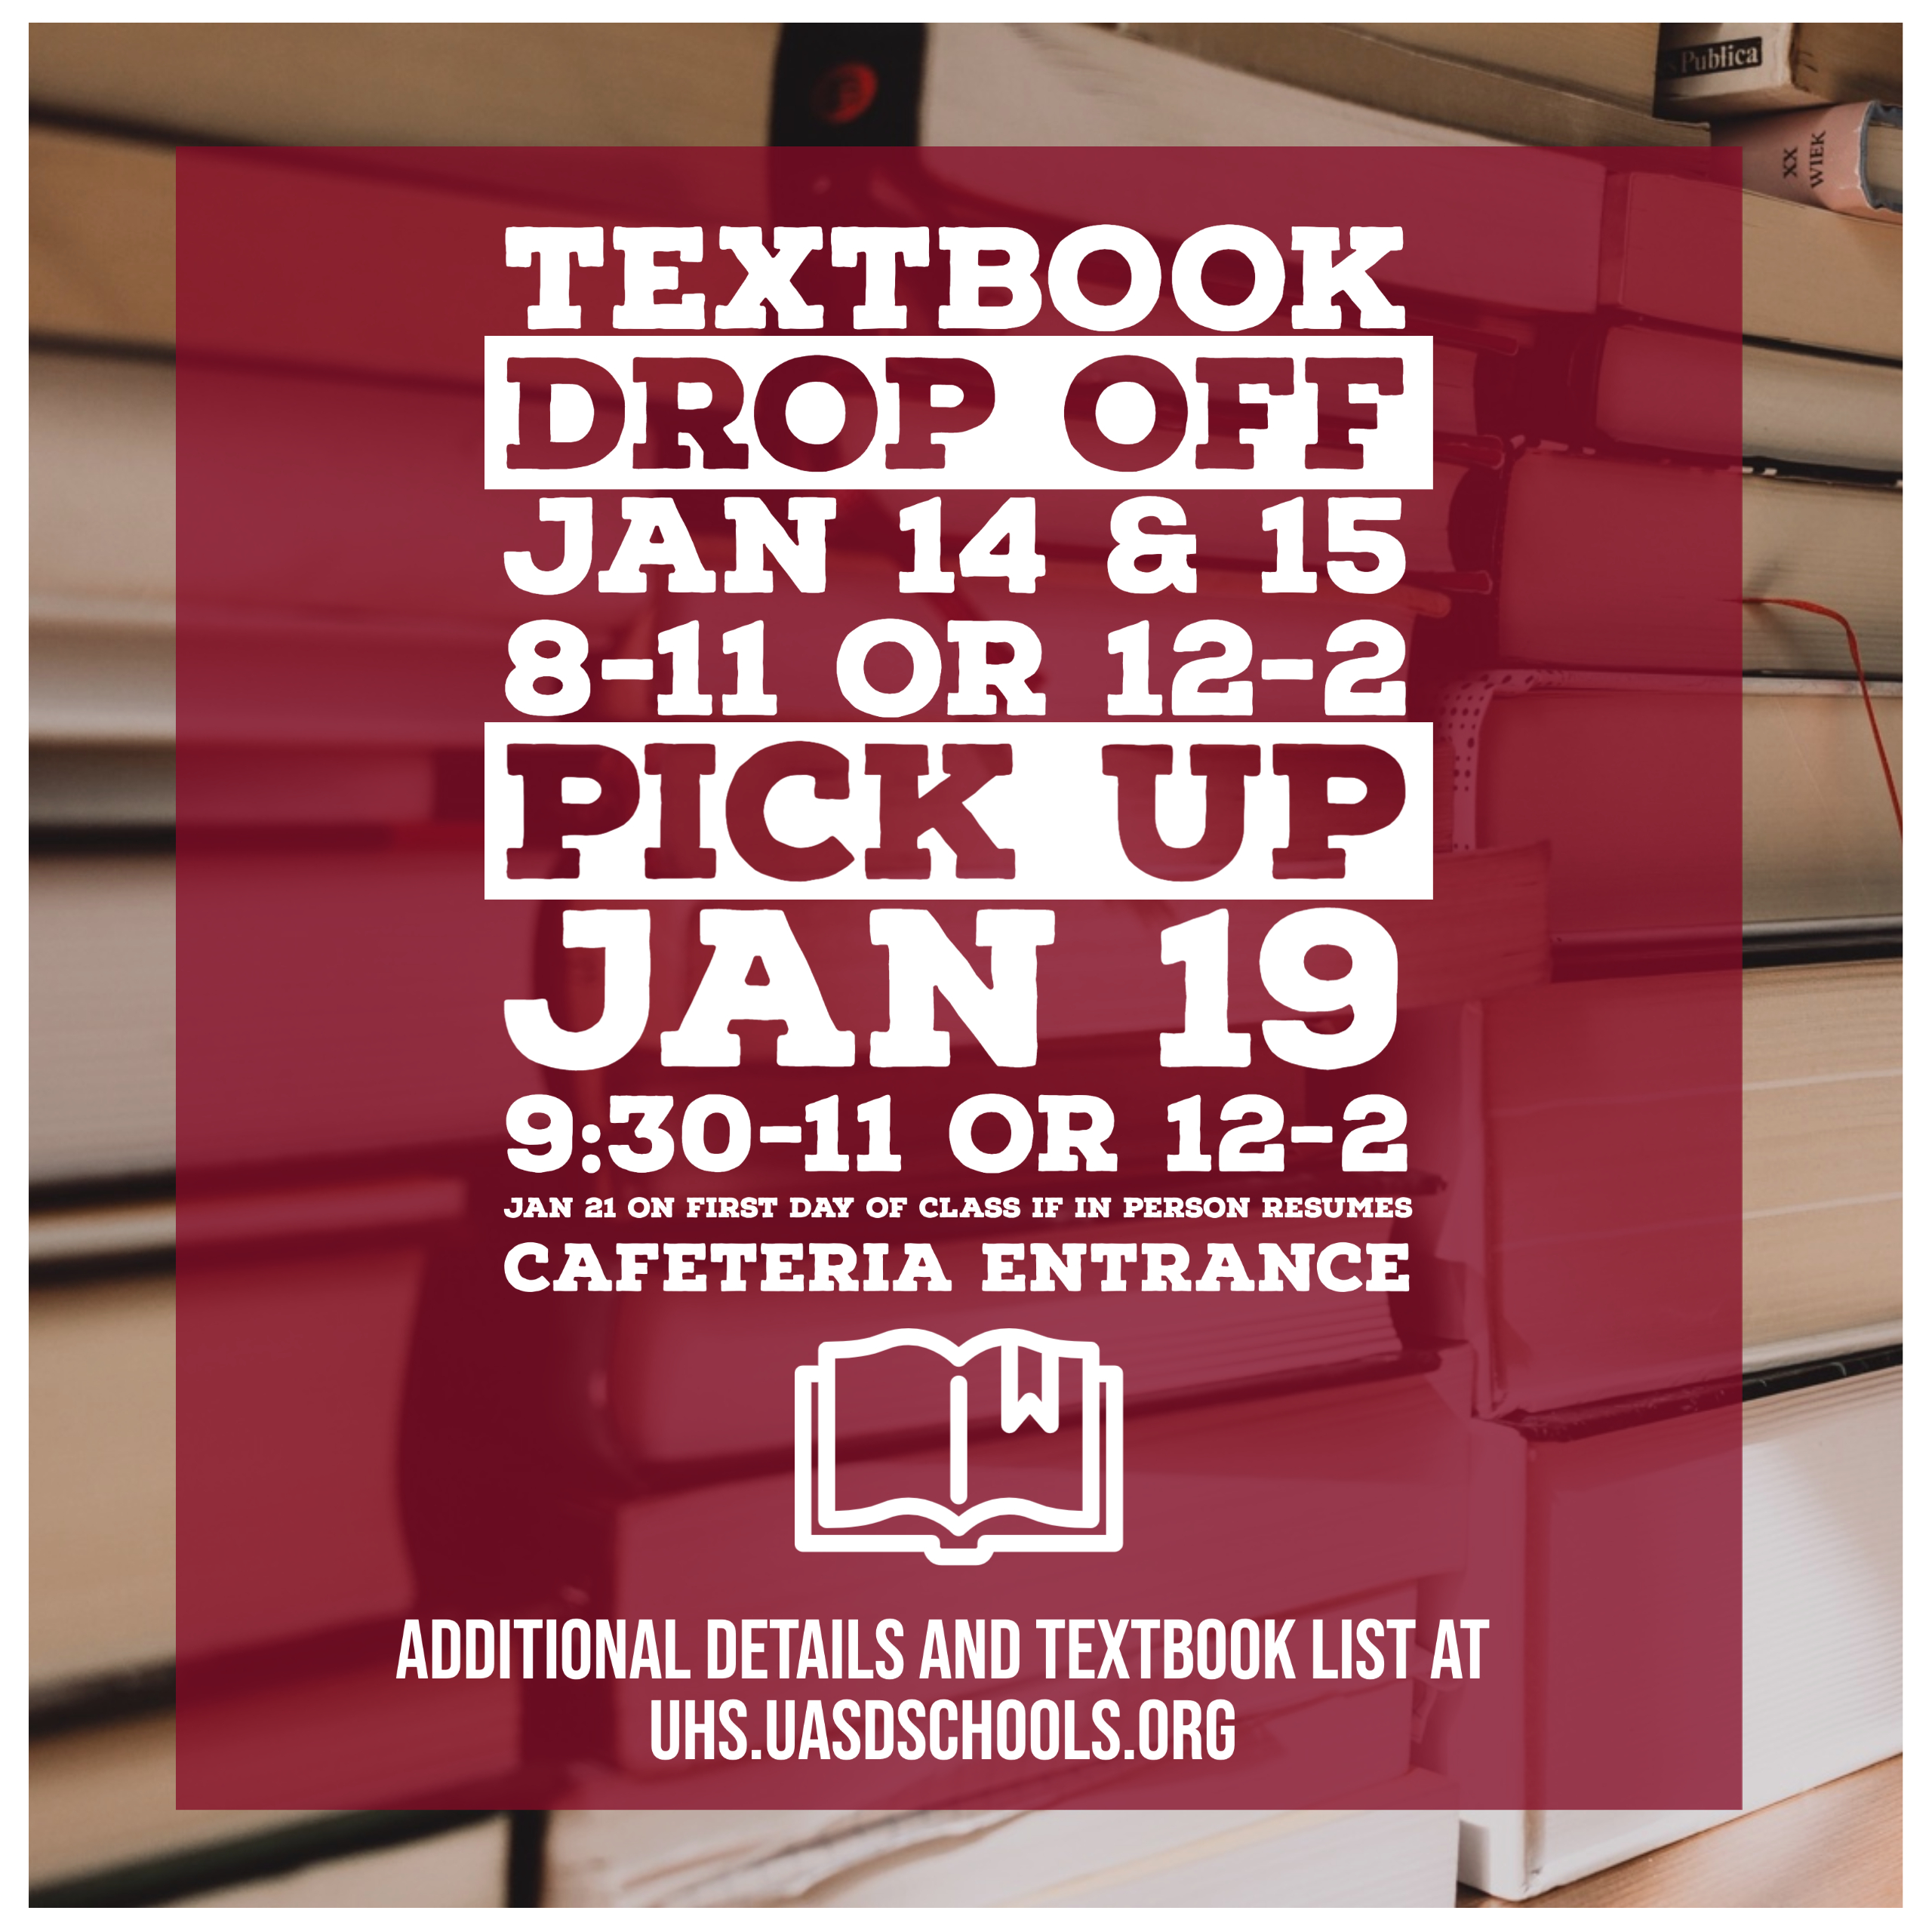 Textbook Drop Off and Pick Up